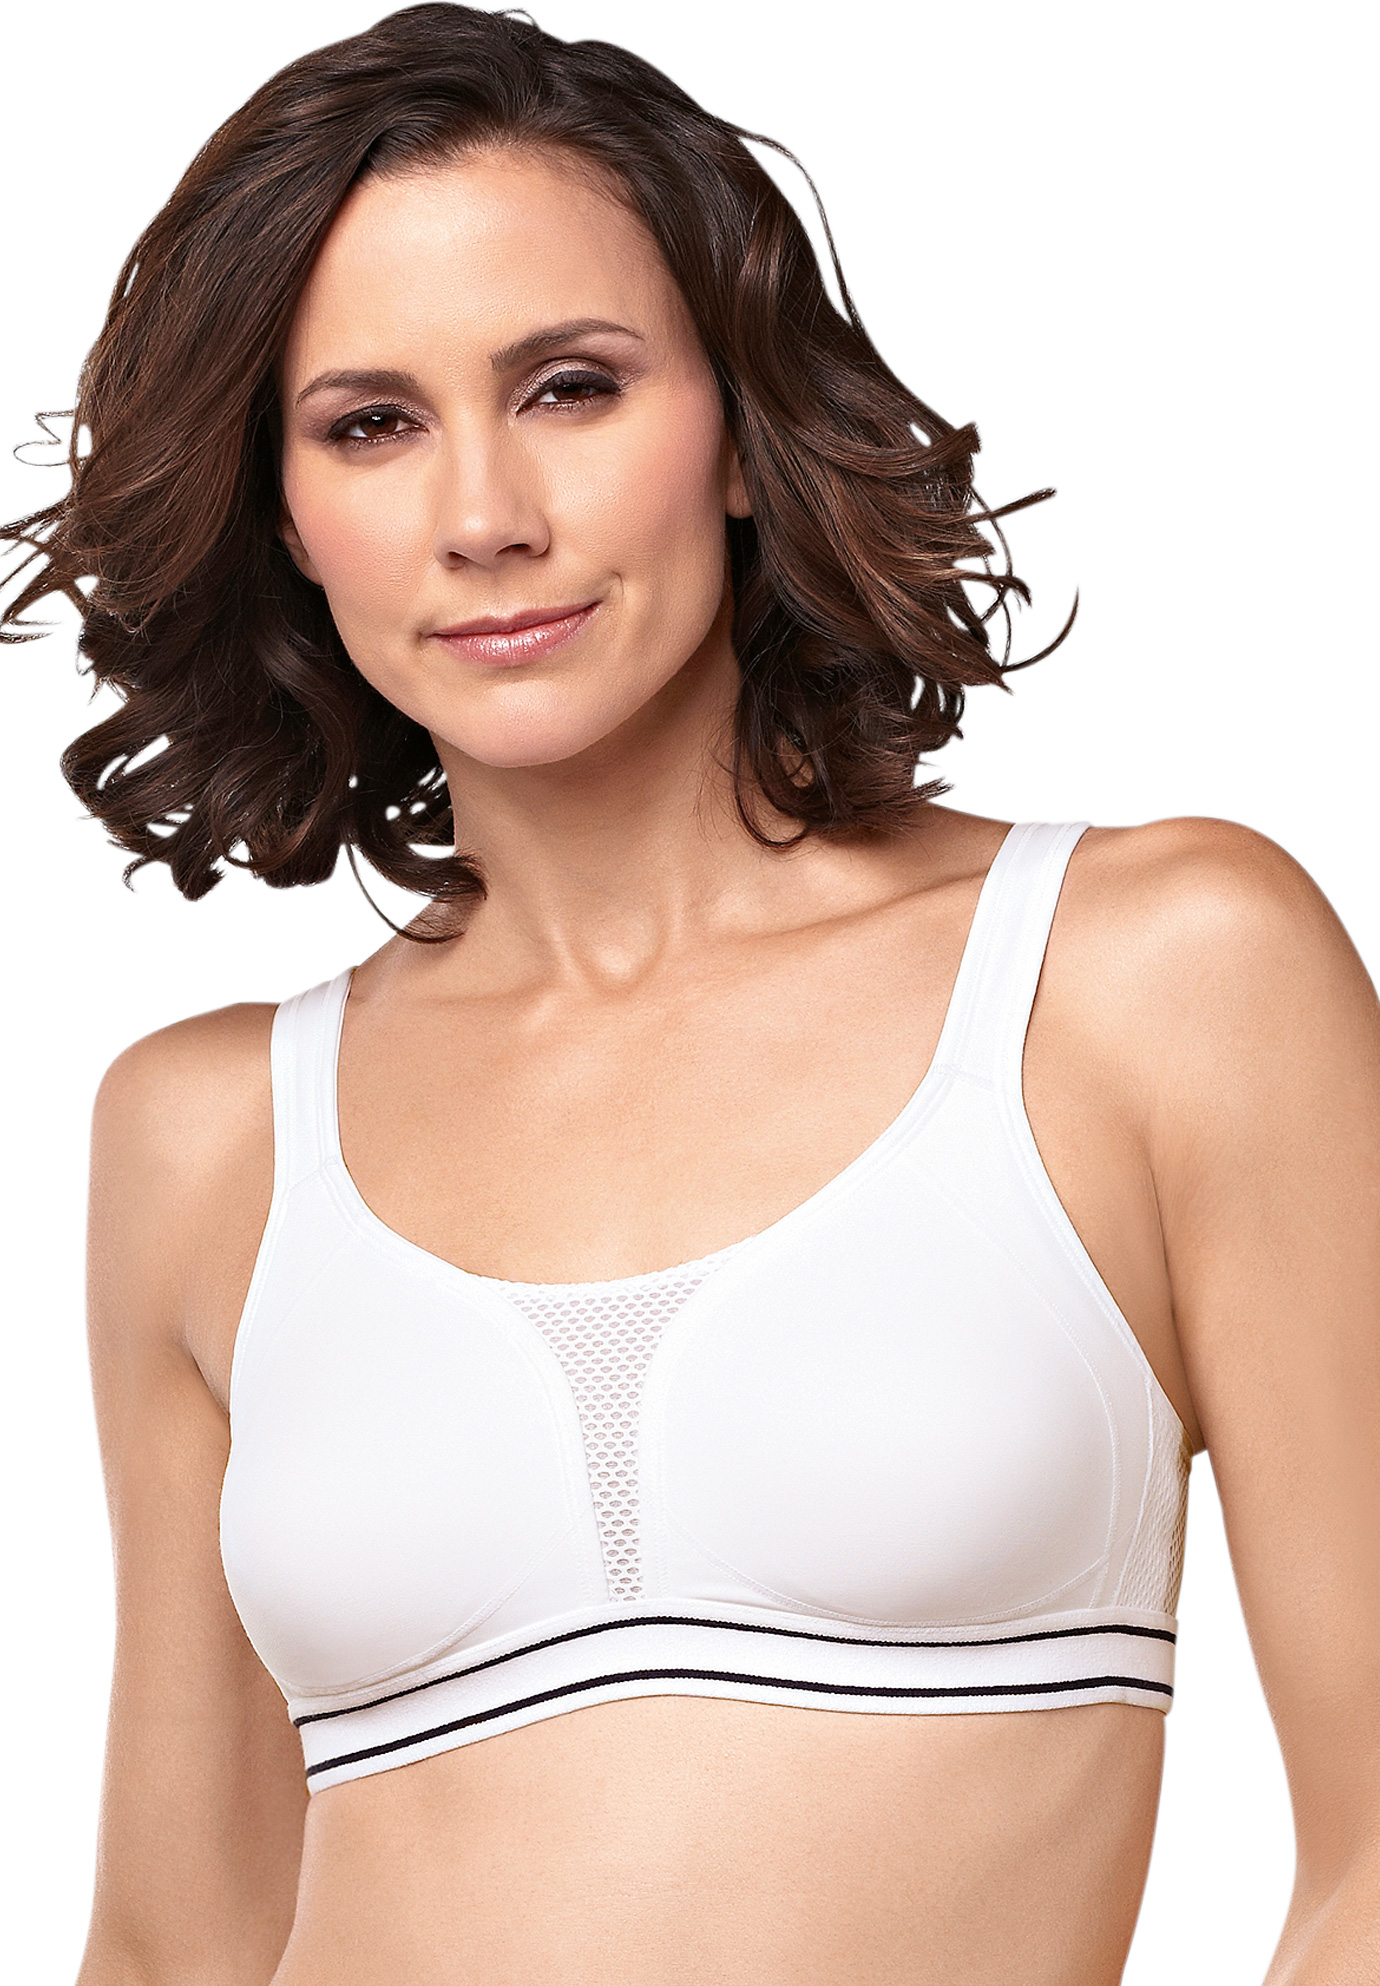 Swimsuitsforall.com coupon: Plus Size Women's Amoena Performance Sports Bra by Amoena in White (Size 32 C)